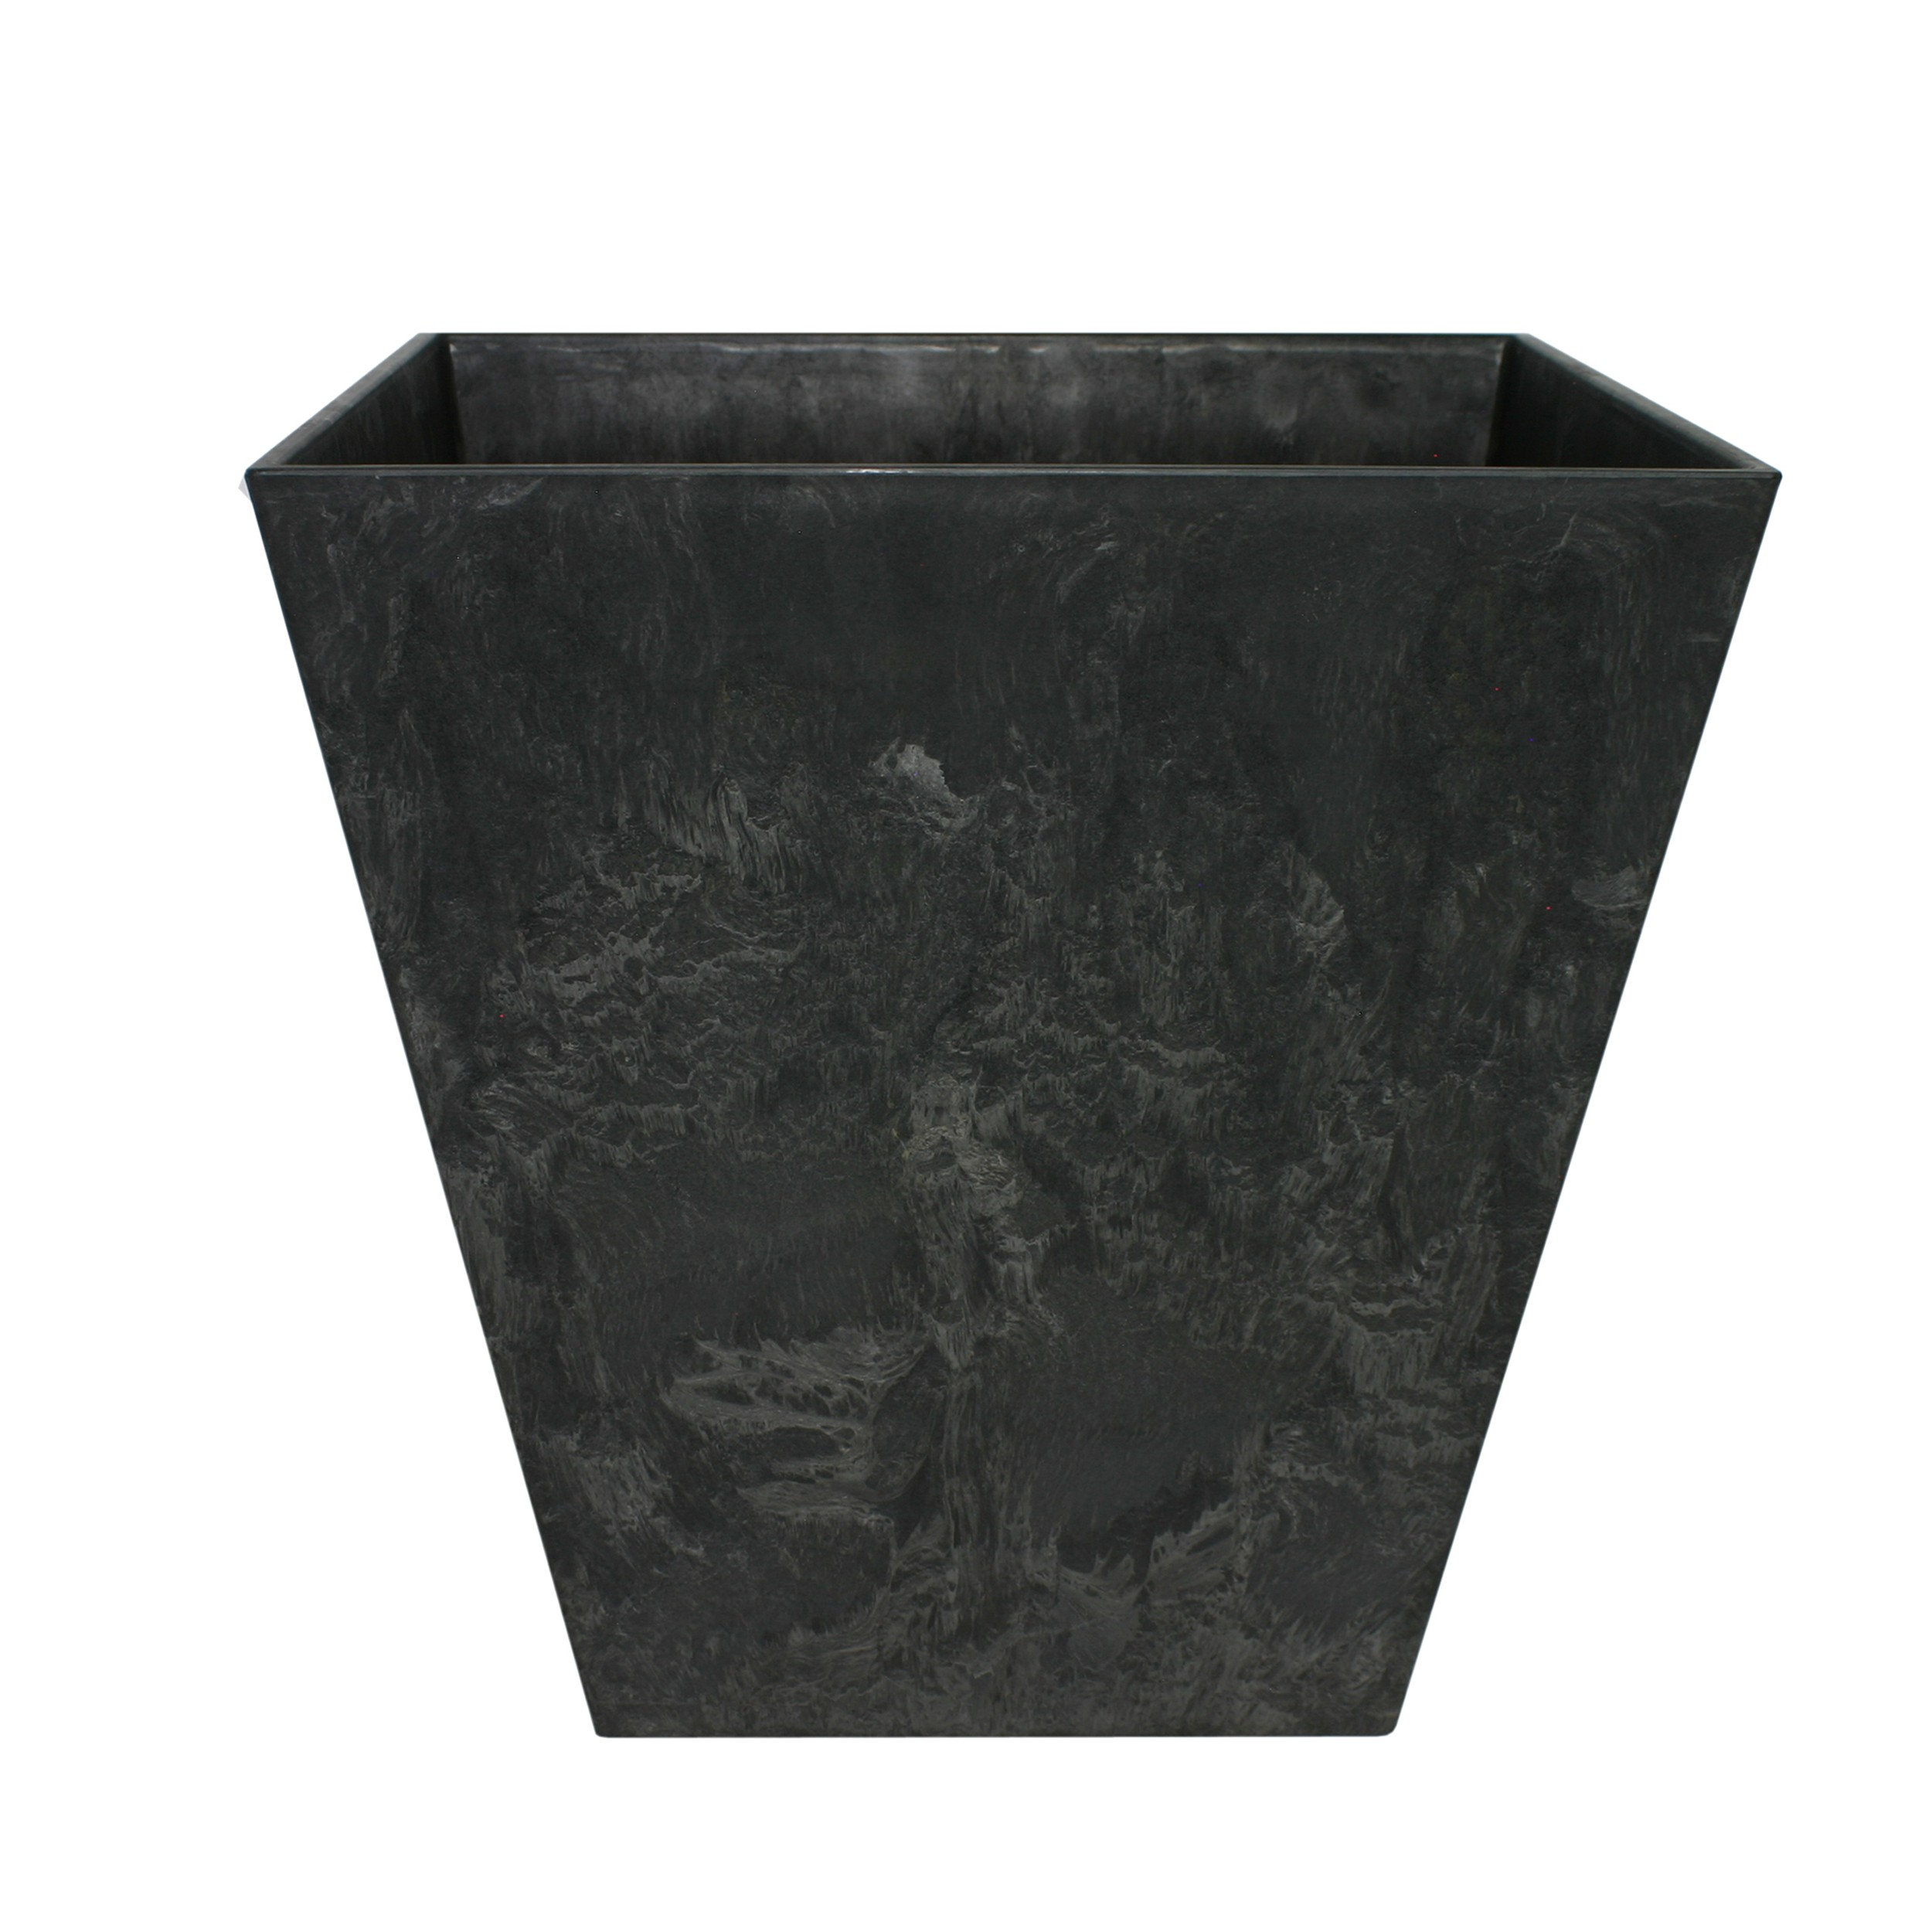 blumenk bel ella 45cm artstone pflanzk bel bertopf wasserspeicher blumentopf ebay. Black Bedroom Furniture Sets. Home Design Ideas